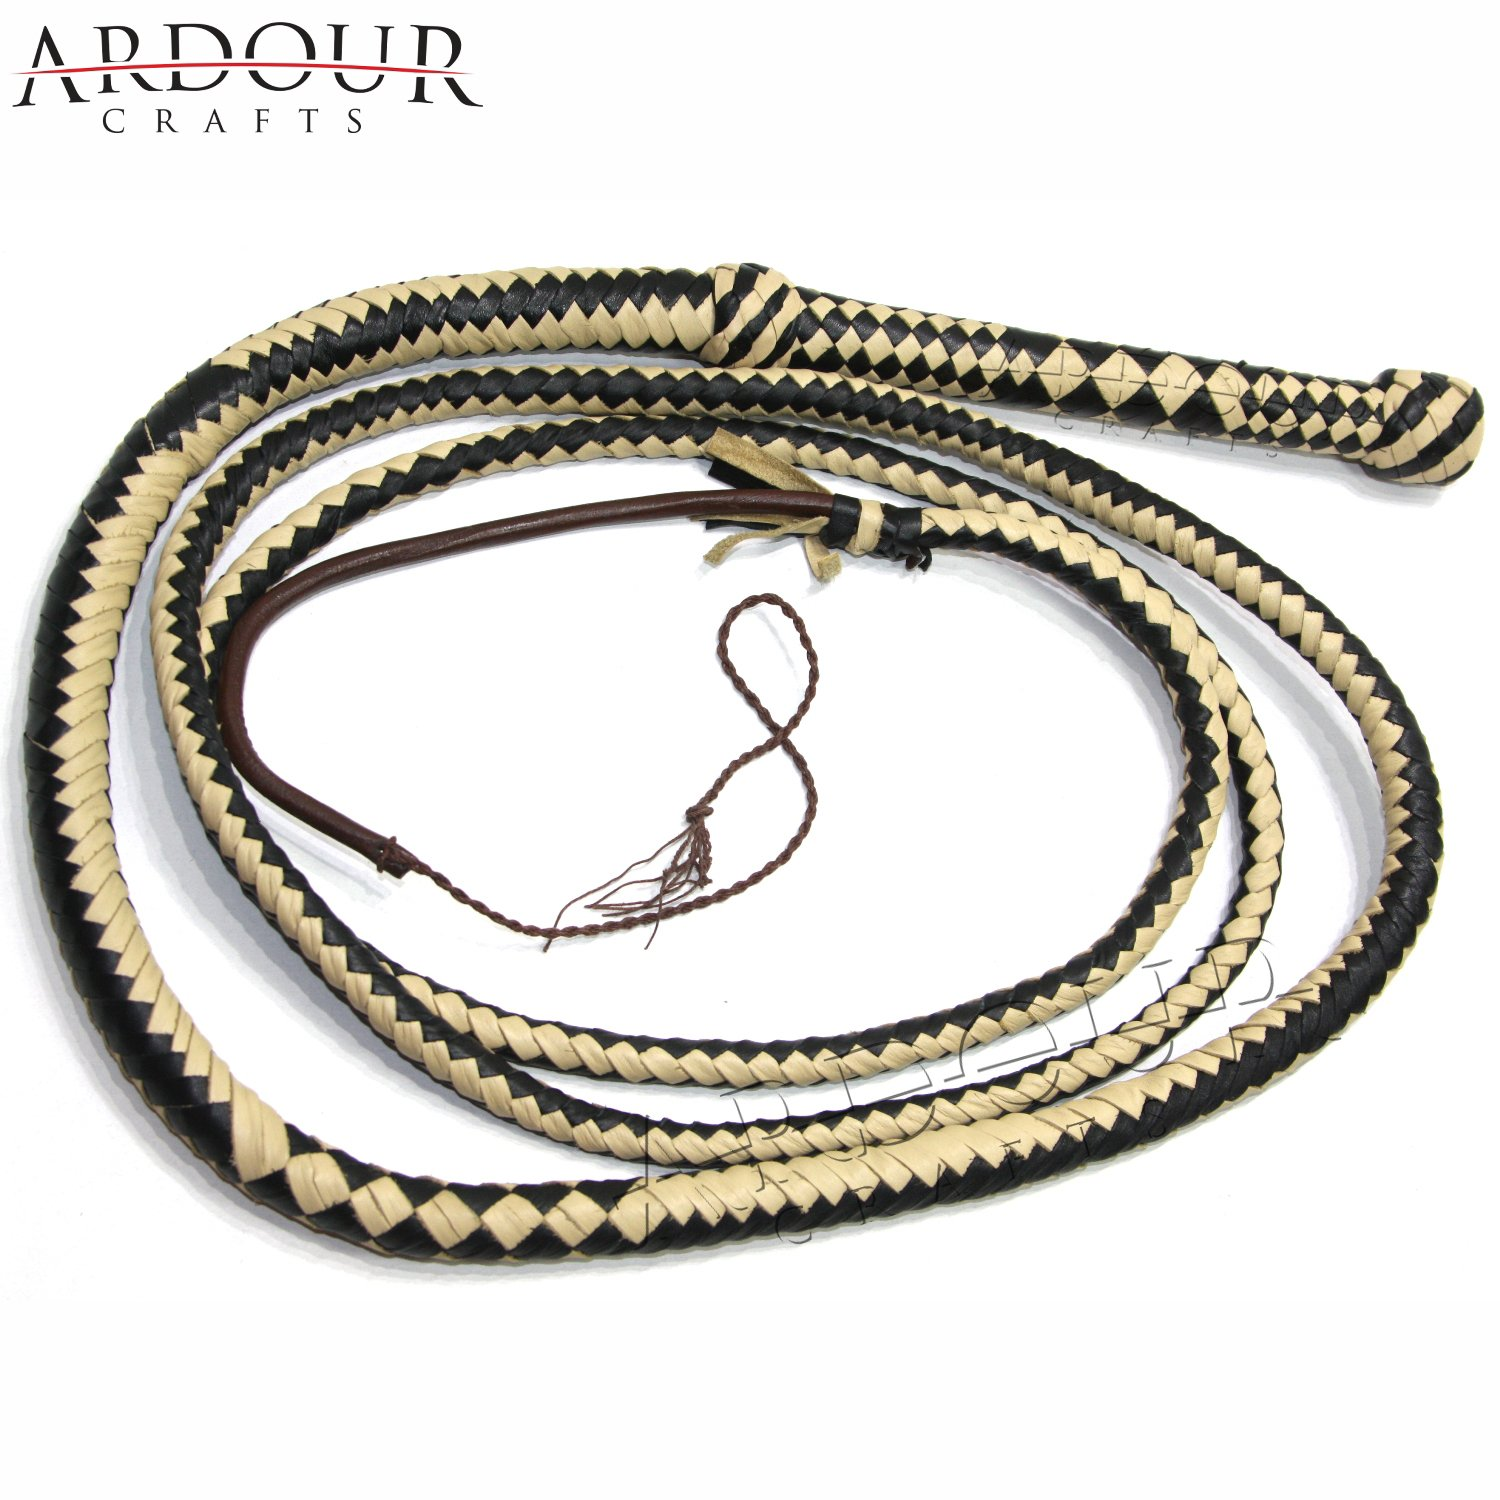 Ardour Crafts Genuine Real Leather 08 Feet Long 12 Plait Weaving Bull Whip Black & Off White